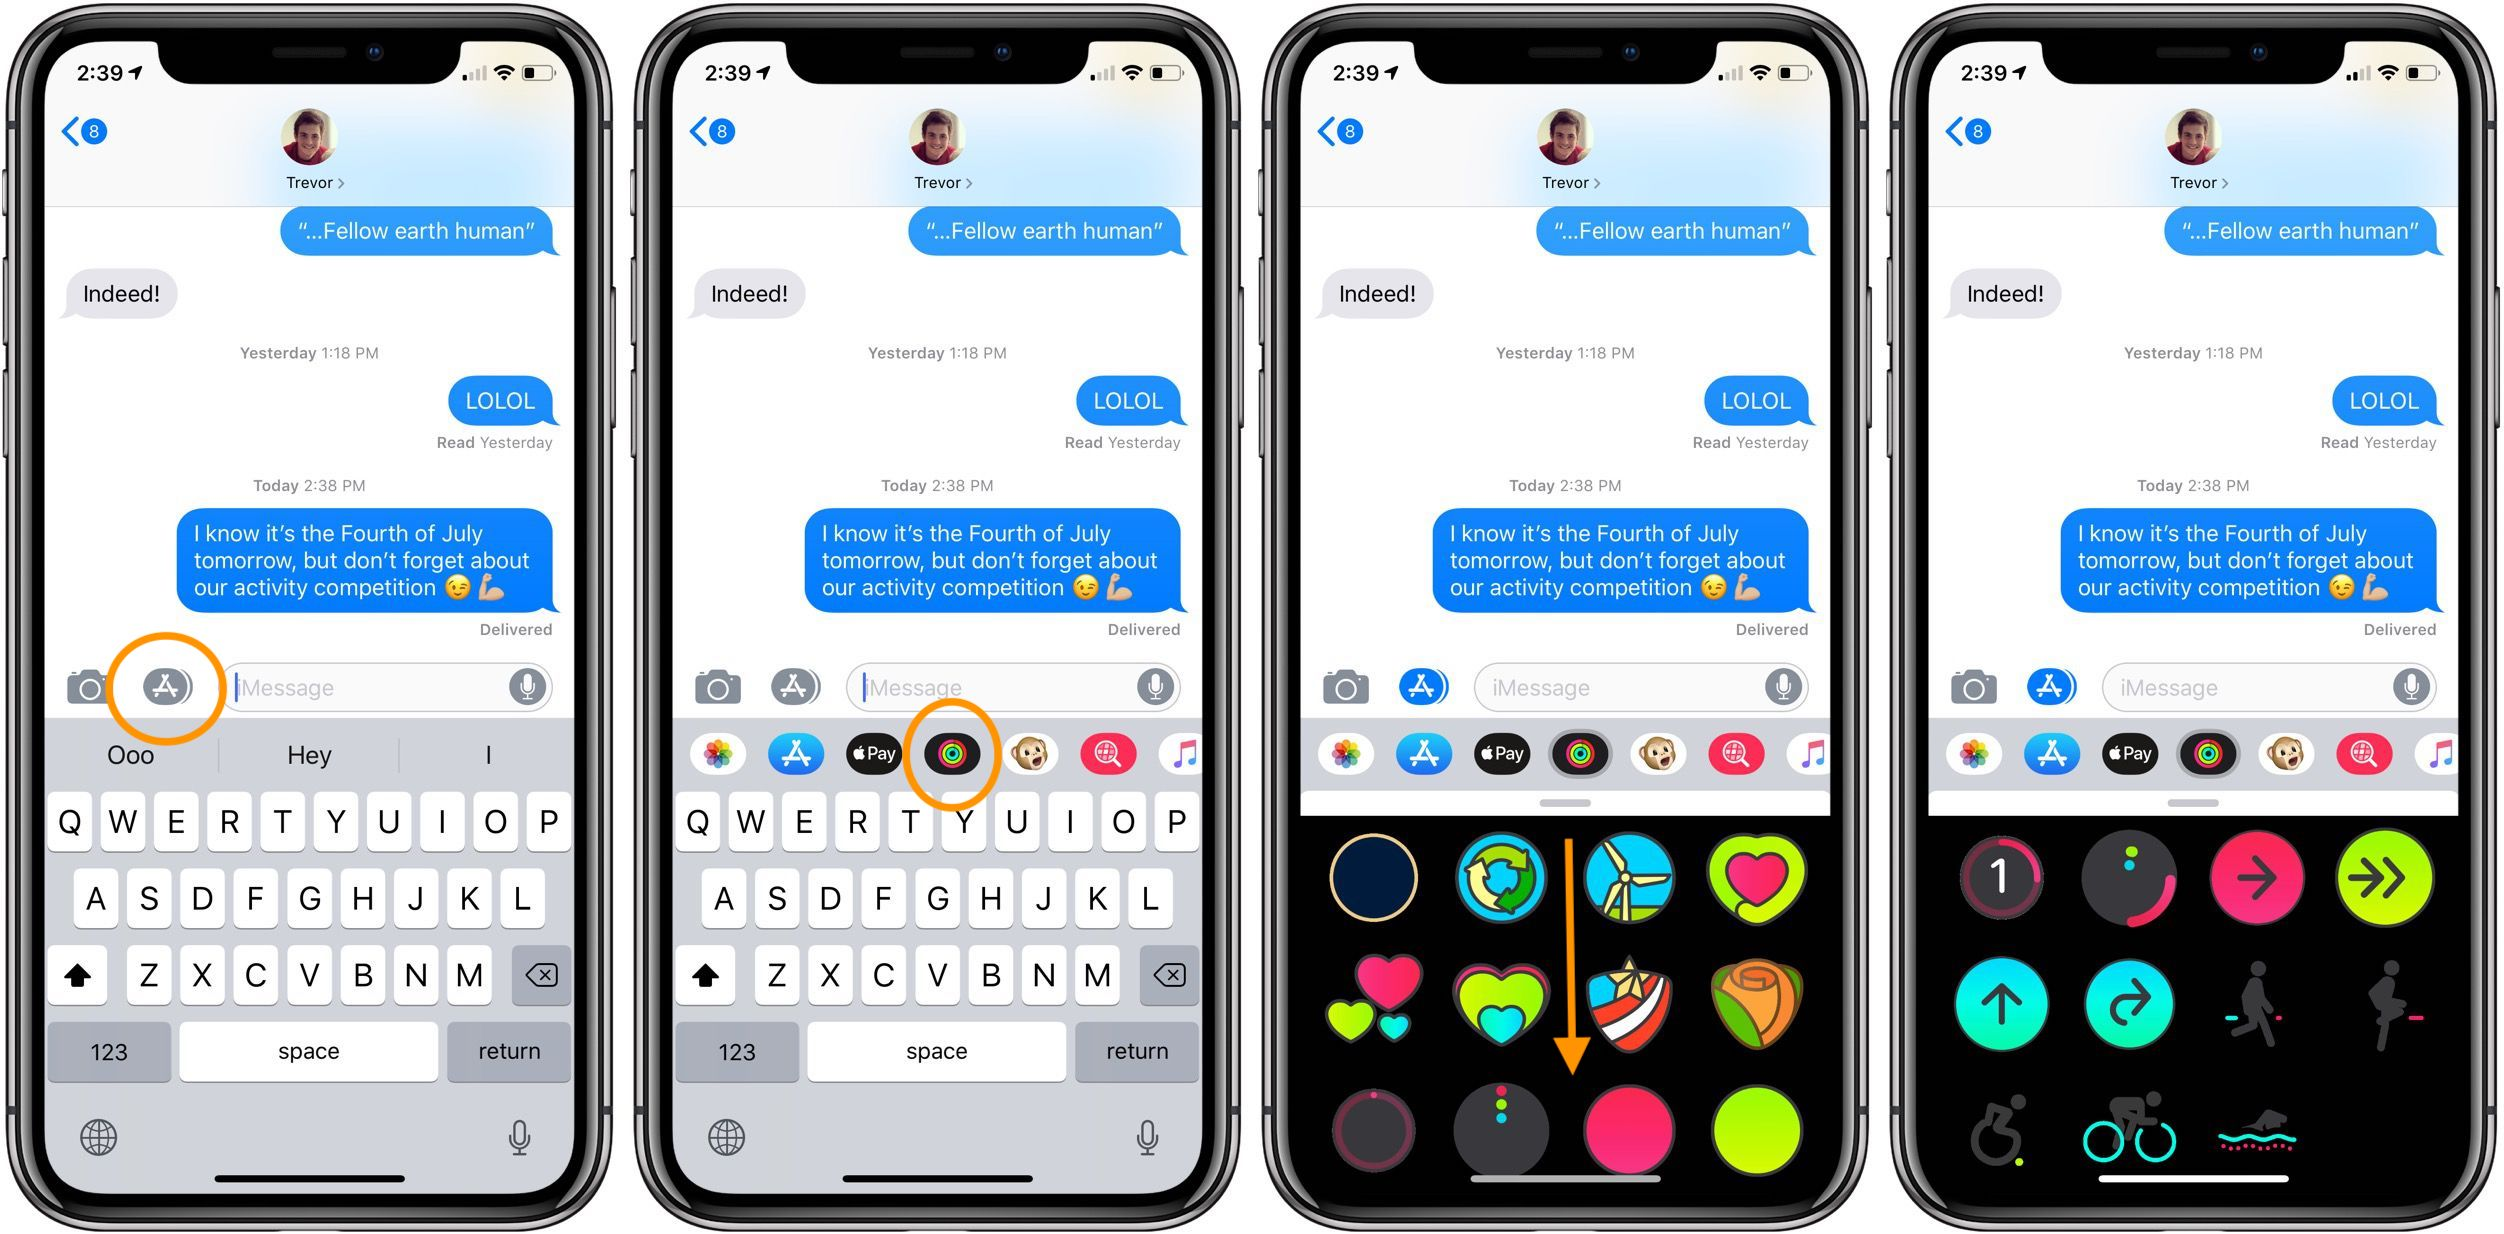 iphone messaging app ios 12 how to use the animated activity app stickers in 12035